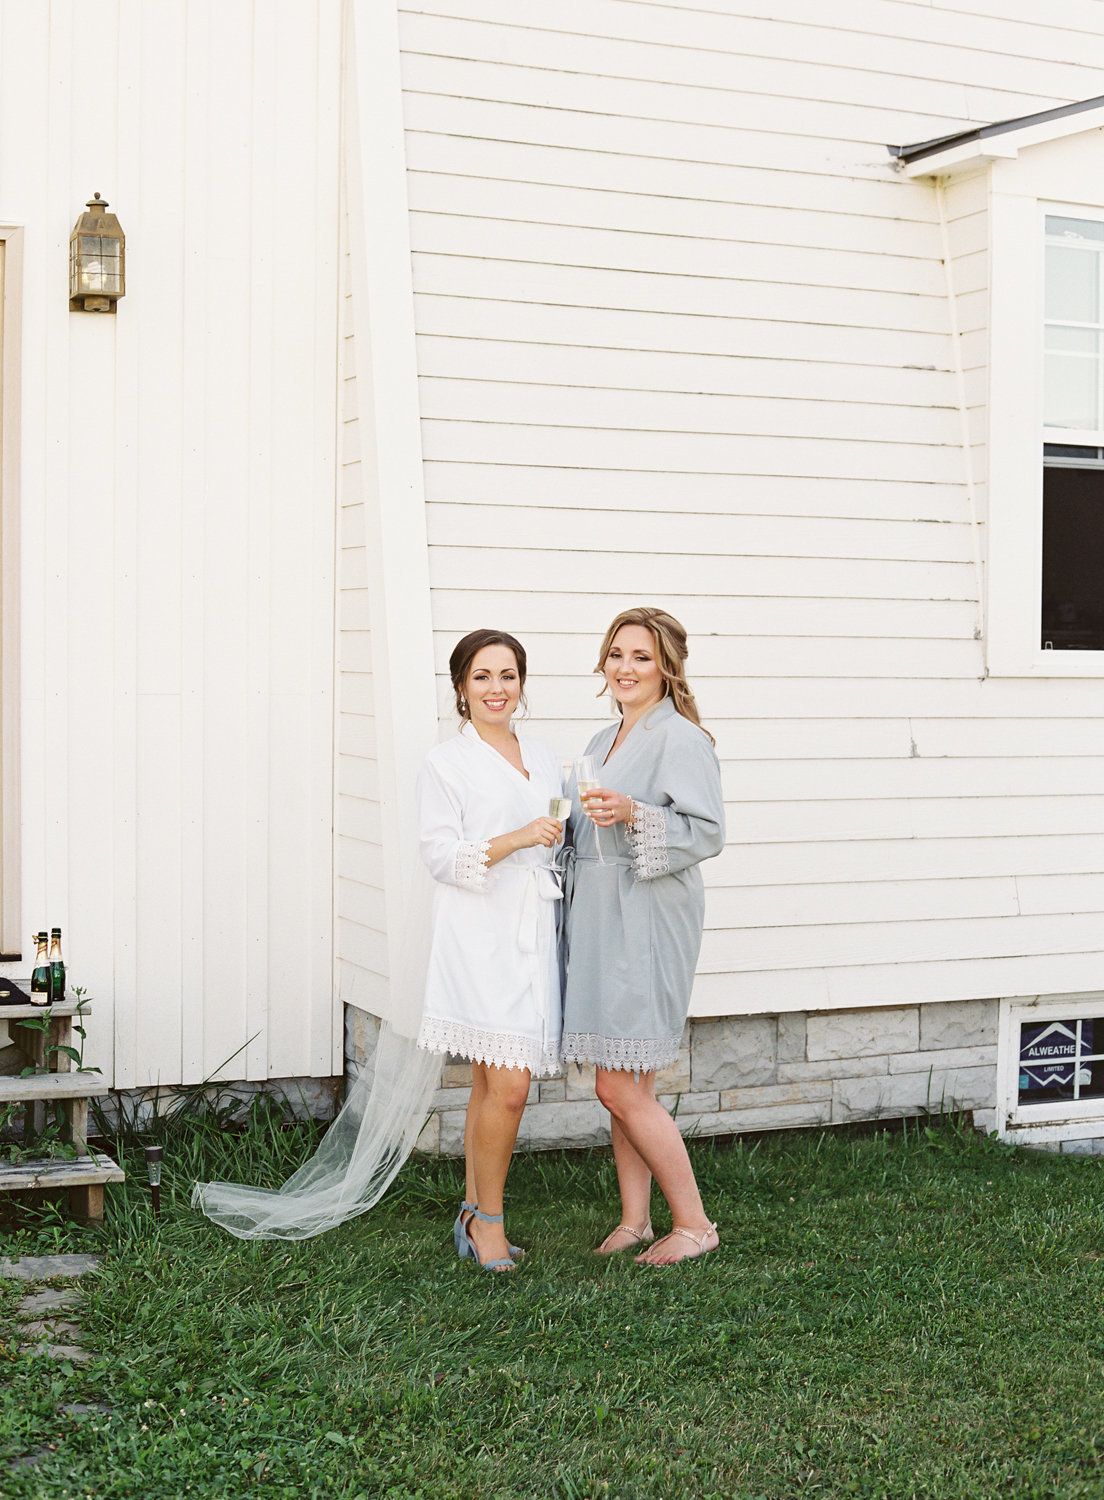 Jacqueline Anne Photography - Nova Scotia Backyard Wedding-37